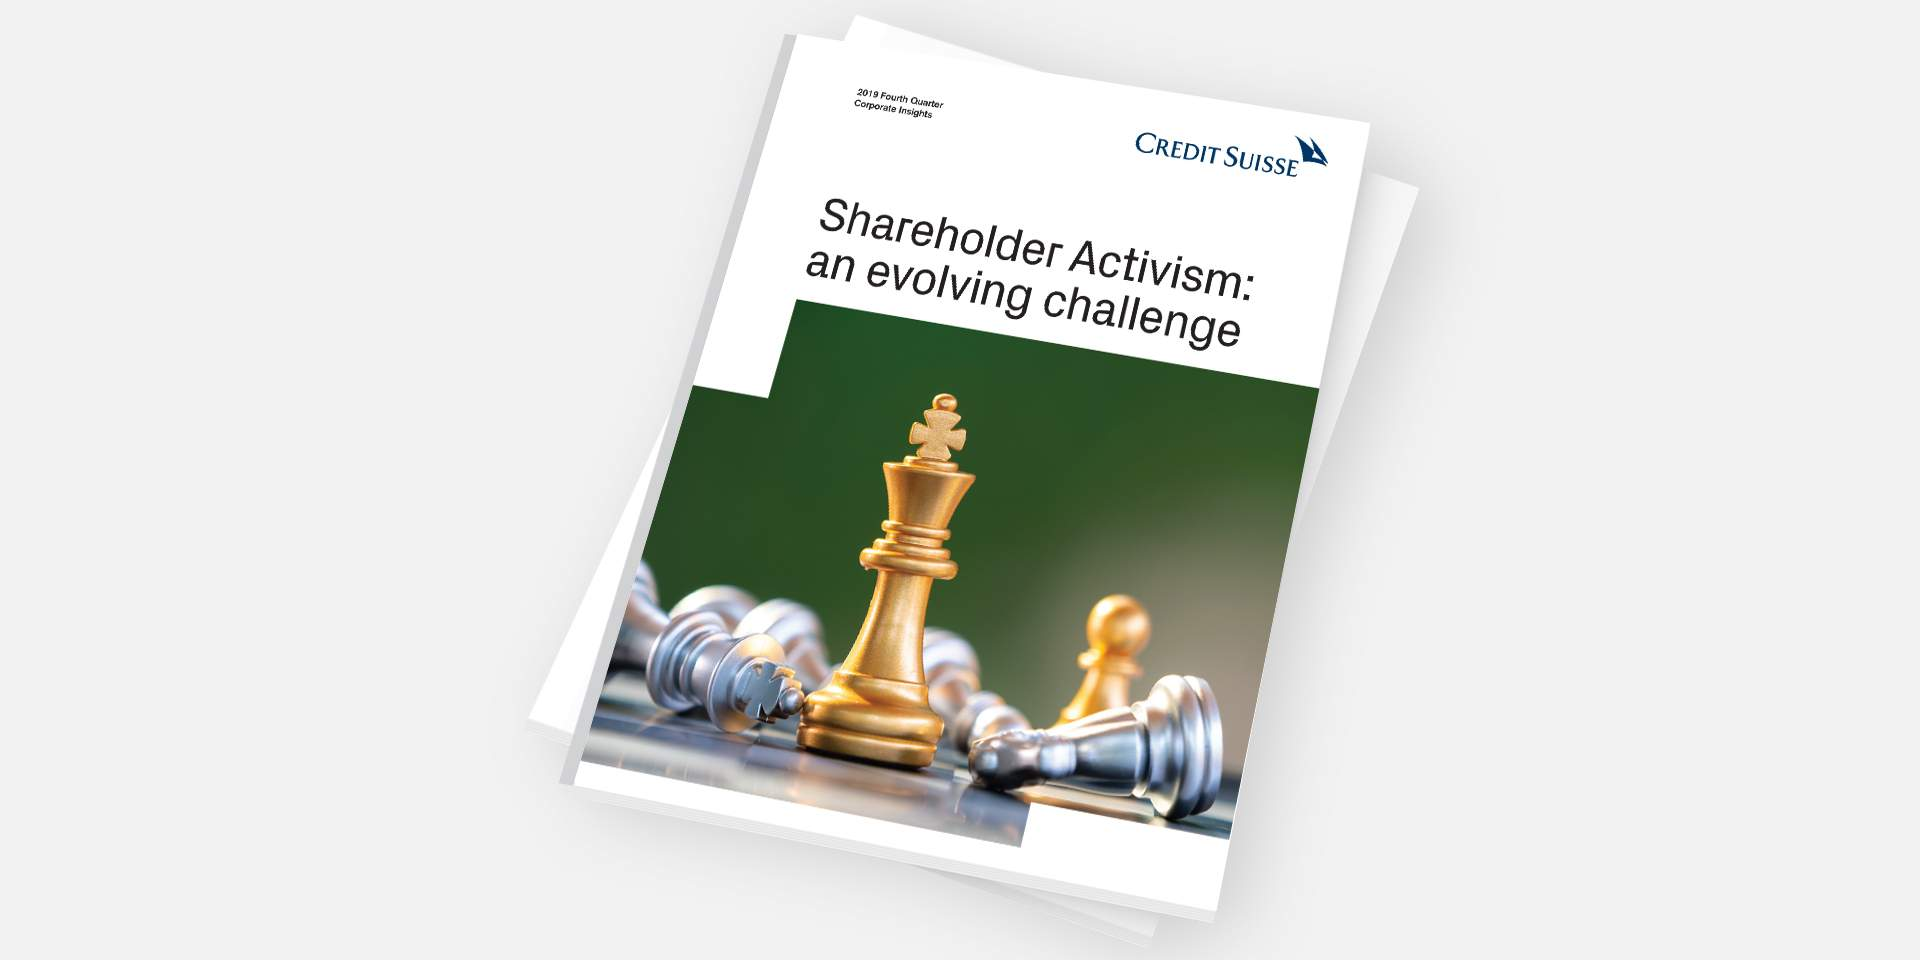 Shareholder Activism: an evolving challenge